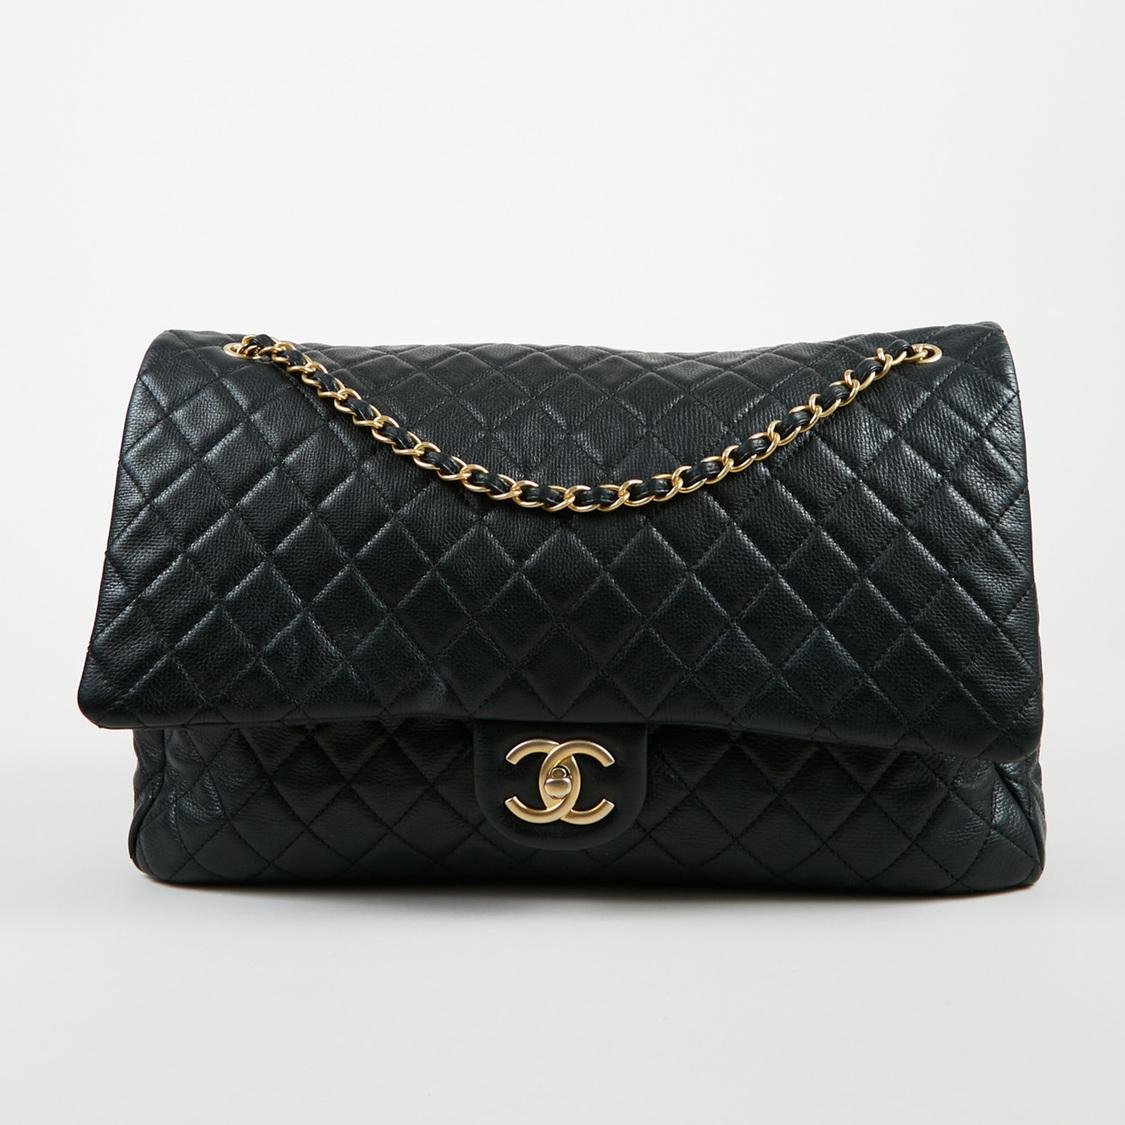 d4fdbd3a7eb0 Chanel Cruise 2017 Black Calfskin Leather Quilted Xxl